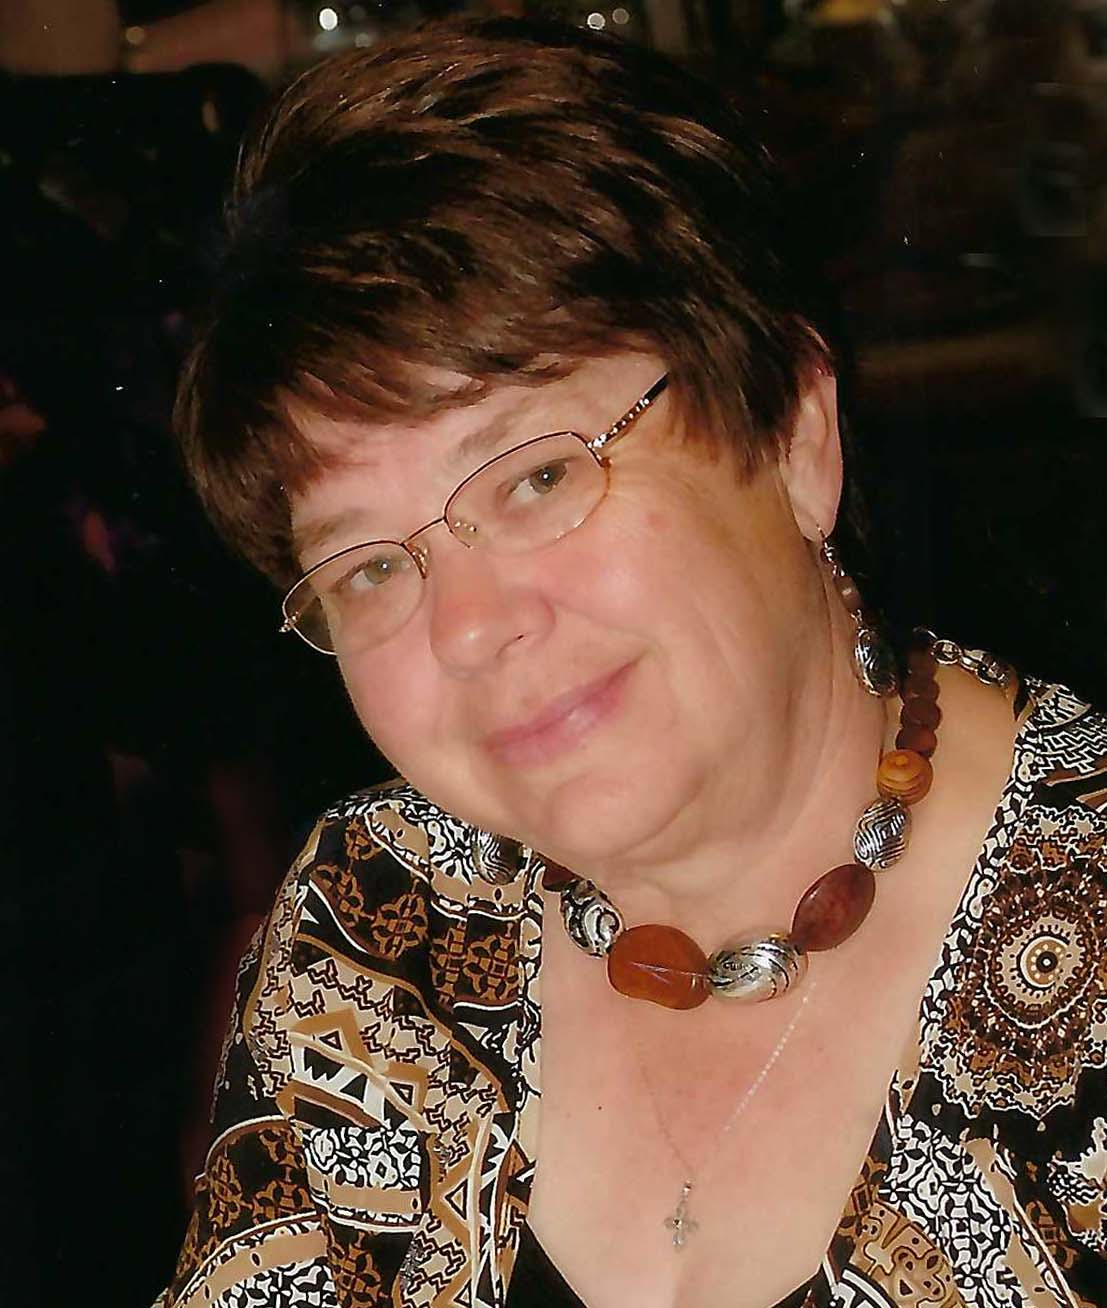 Funeral Services for Janet Naughtin, age 73